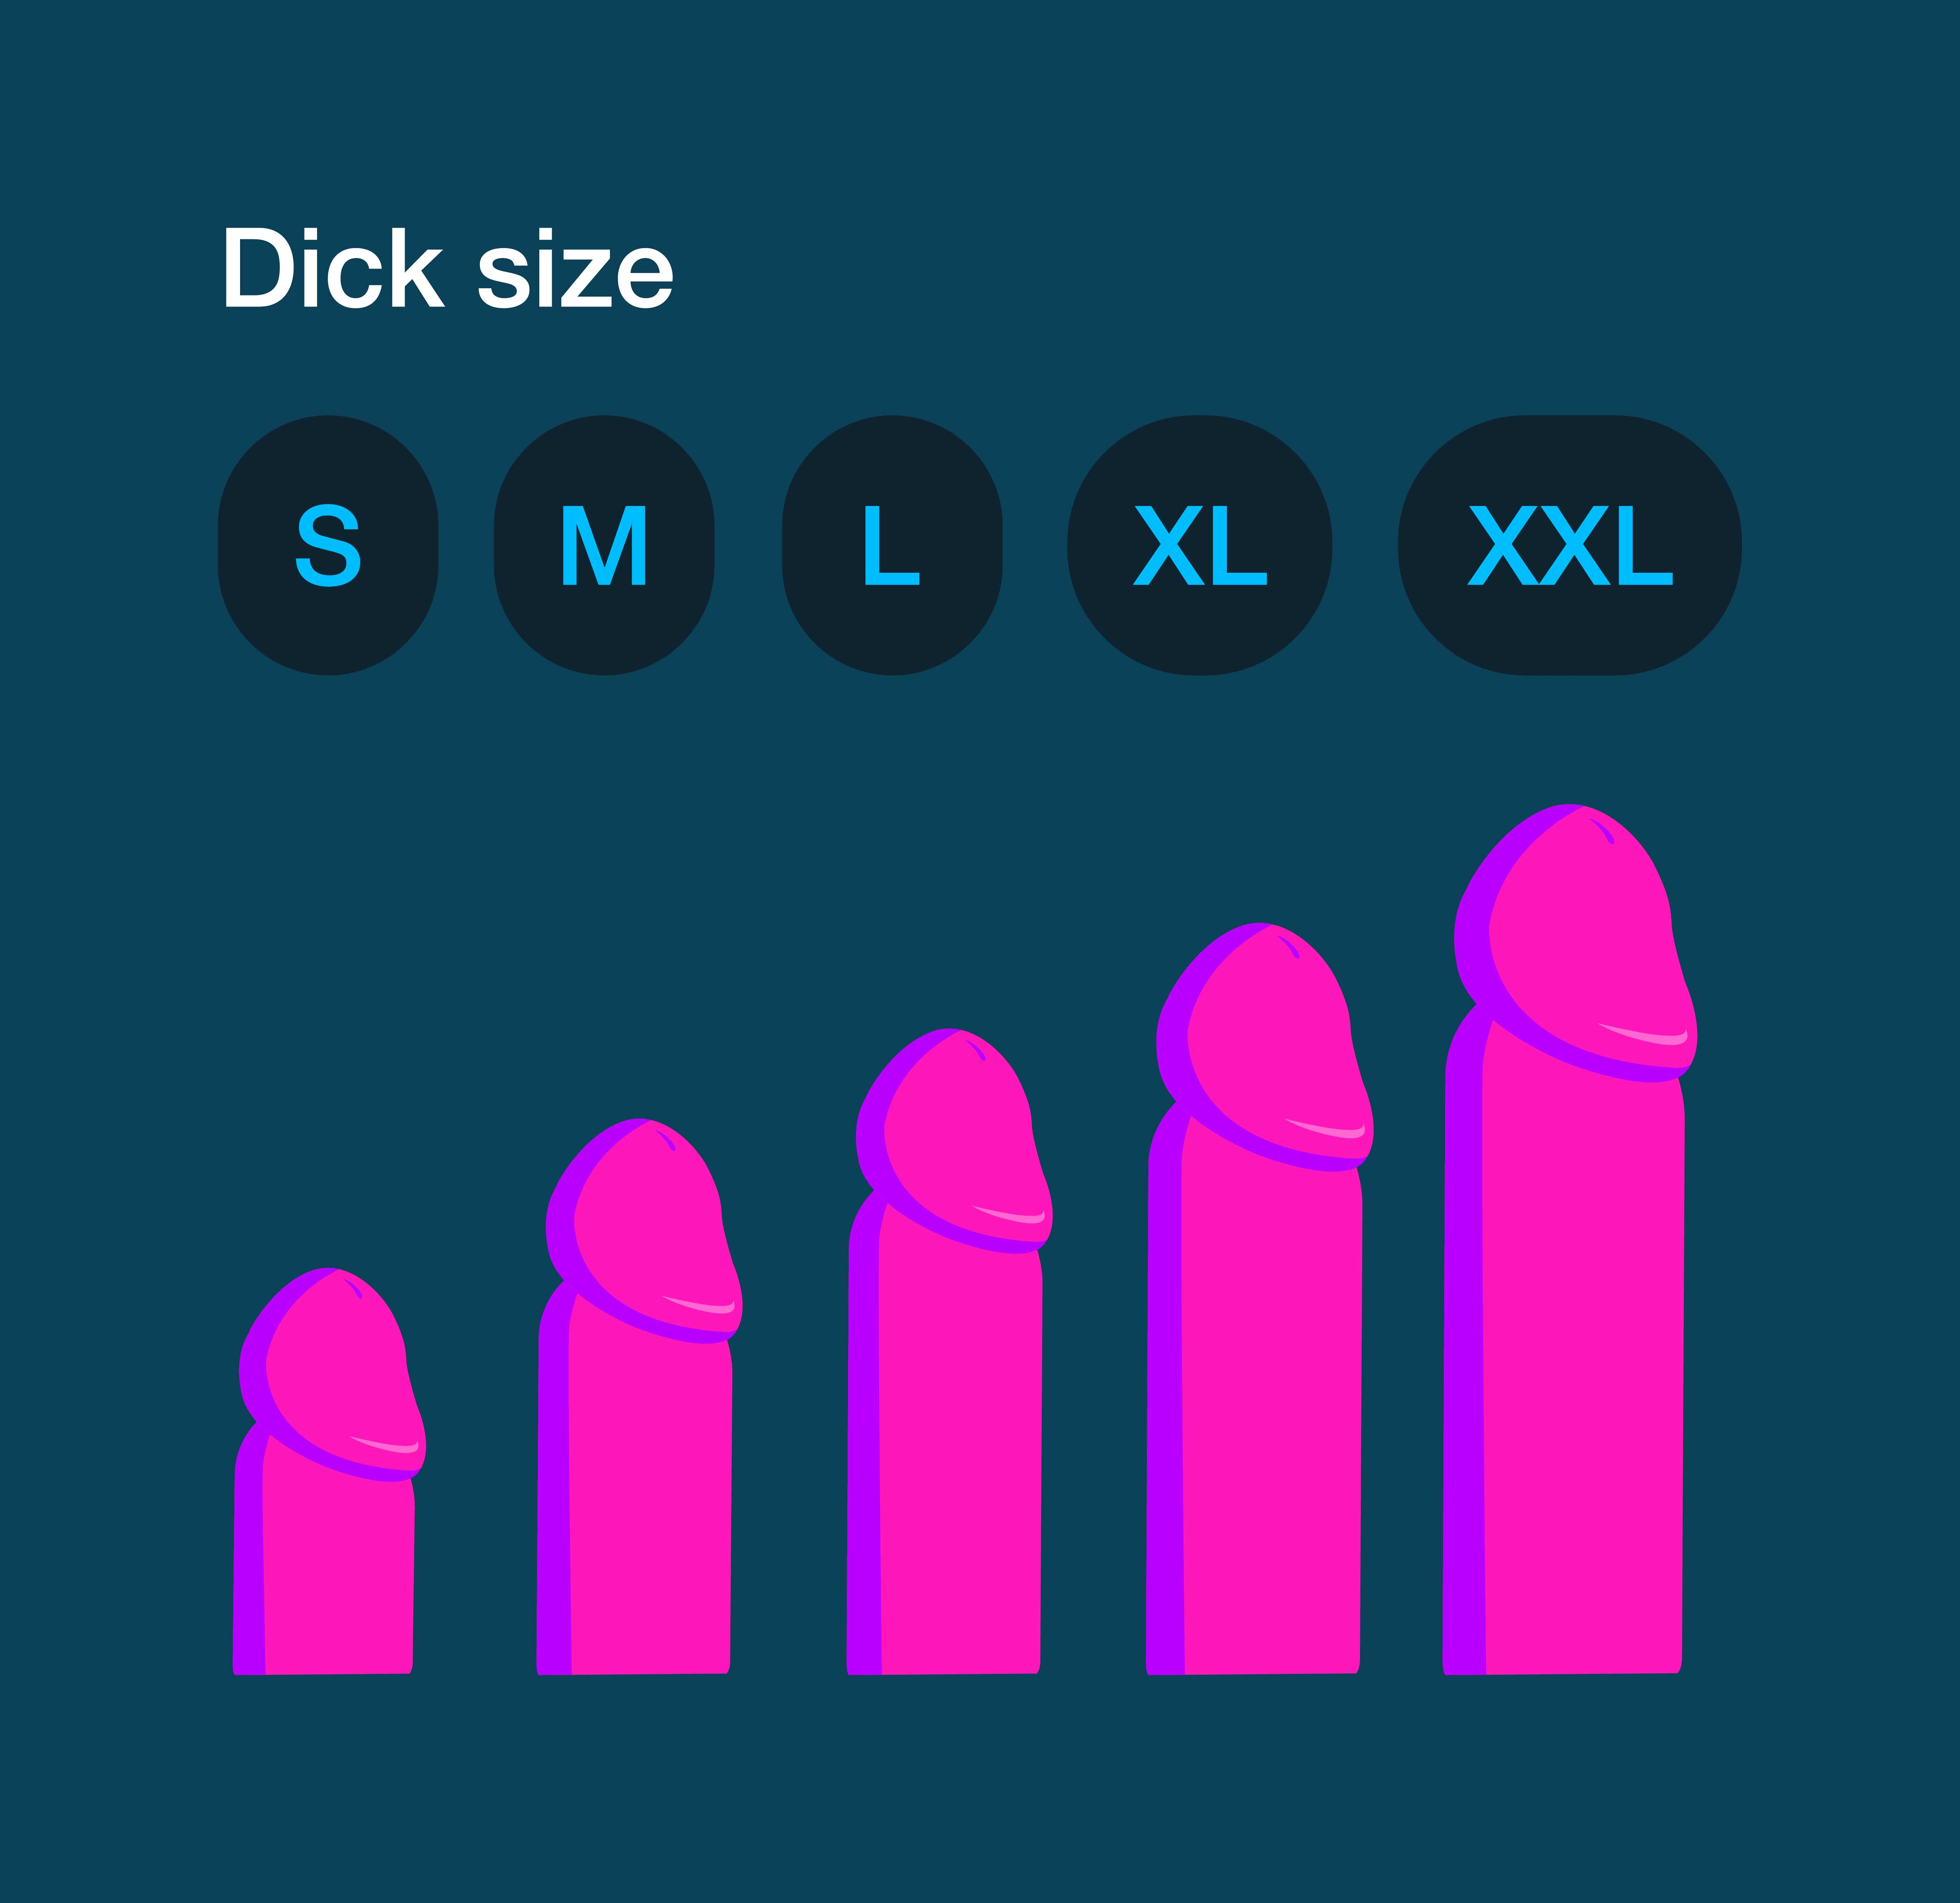 Eminems dick size